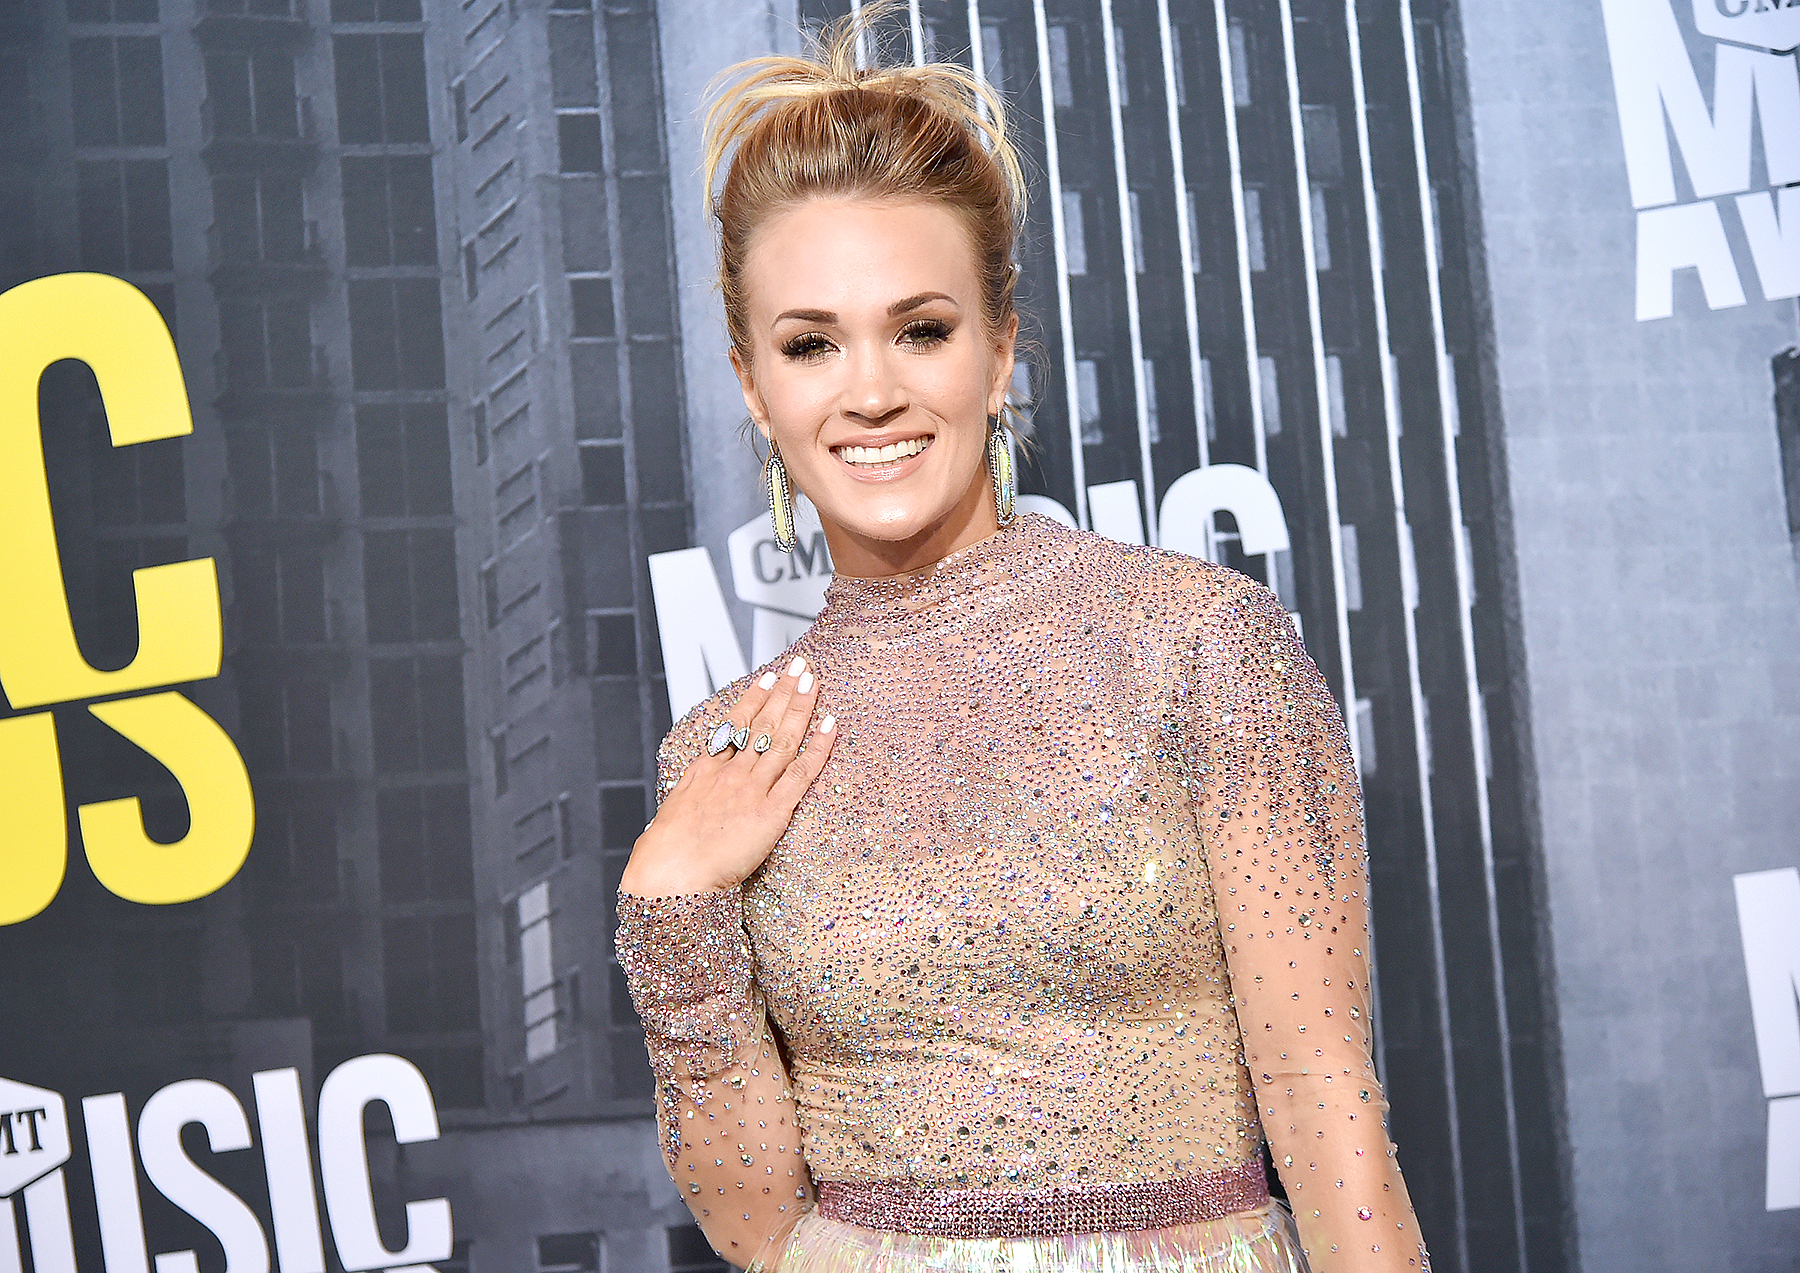 Carrie Underwood attends the 2017 CMT Music Awards at the Music City Center on June 7, 2017 in Nashville, Tennessee.